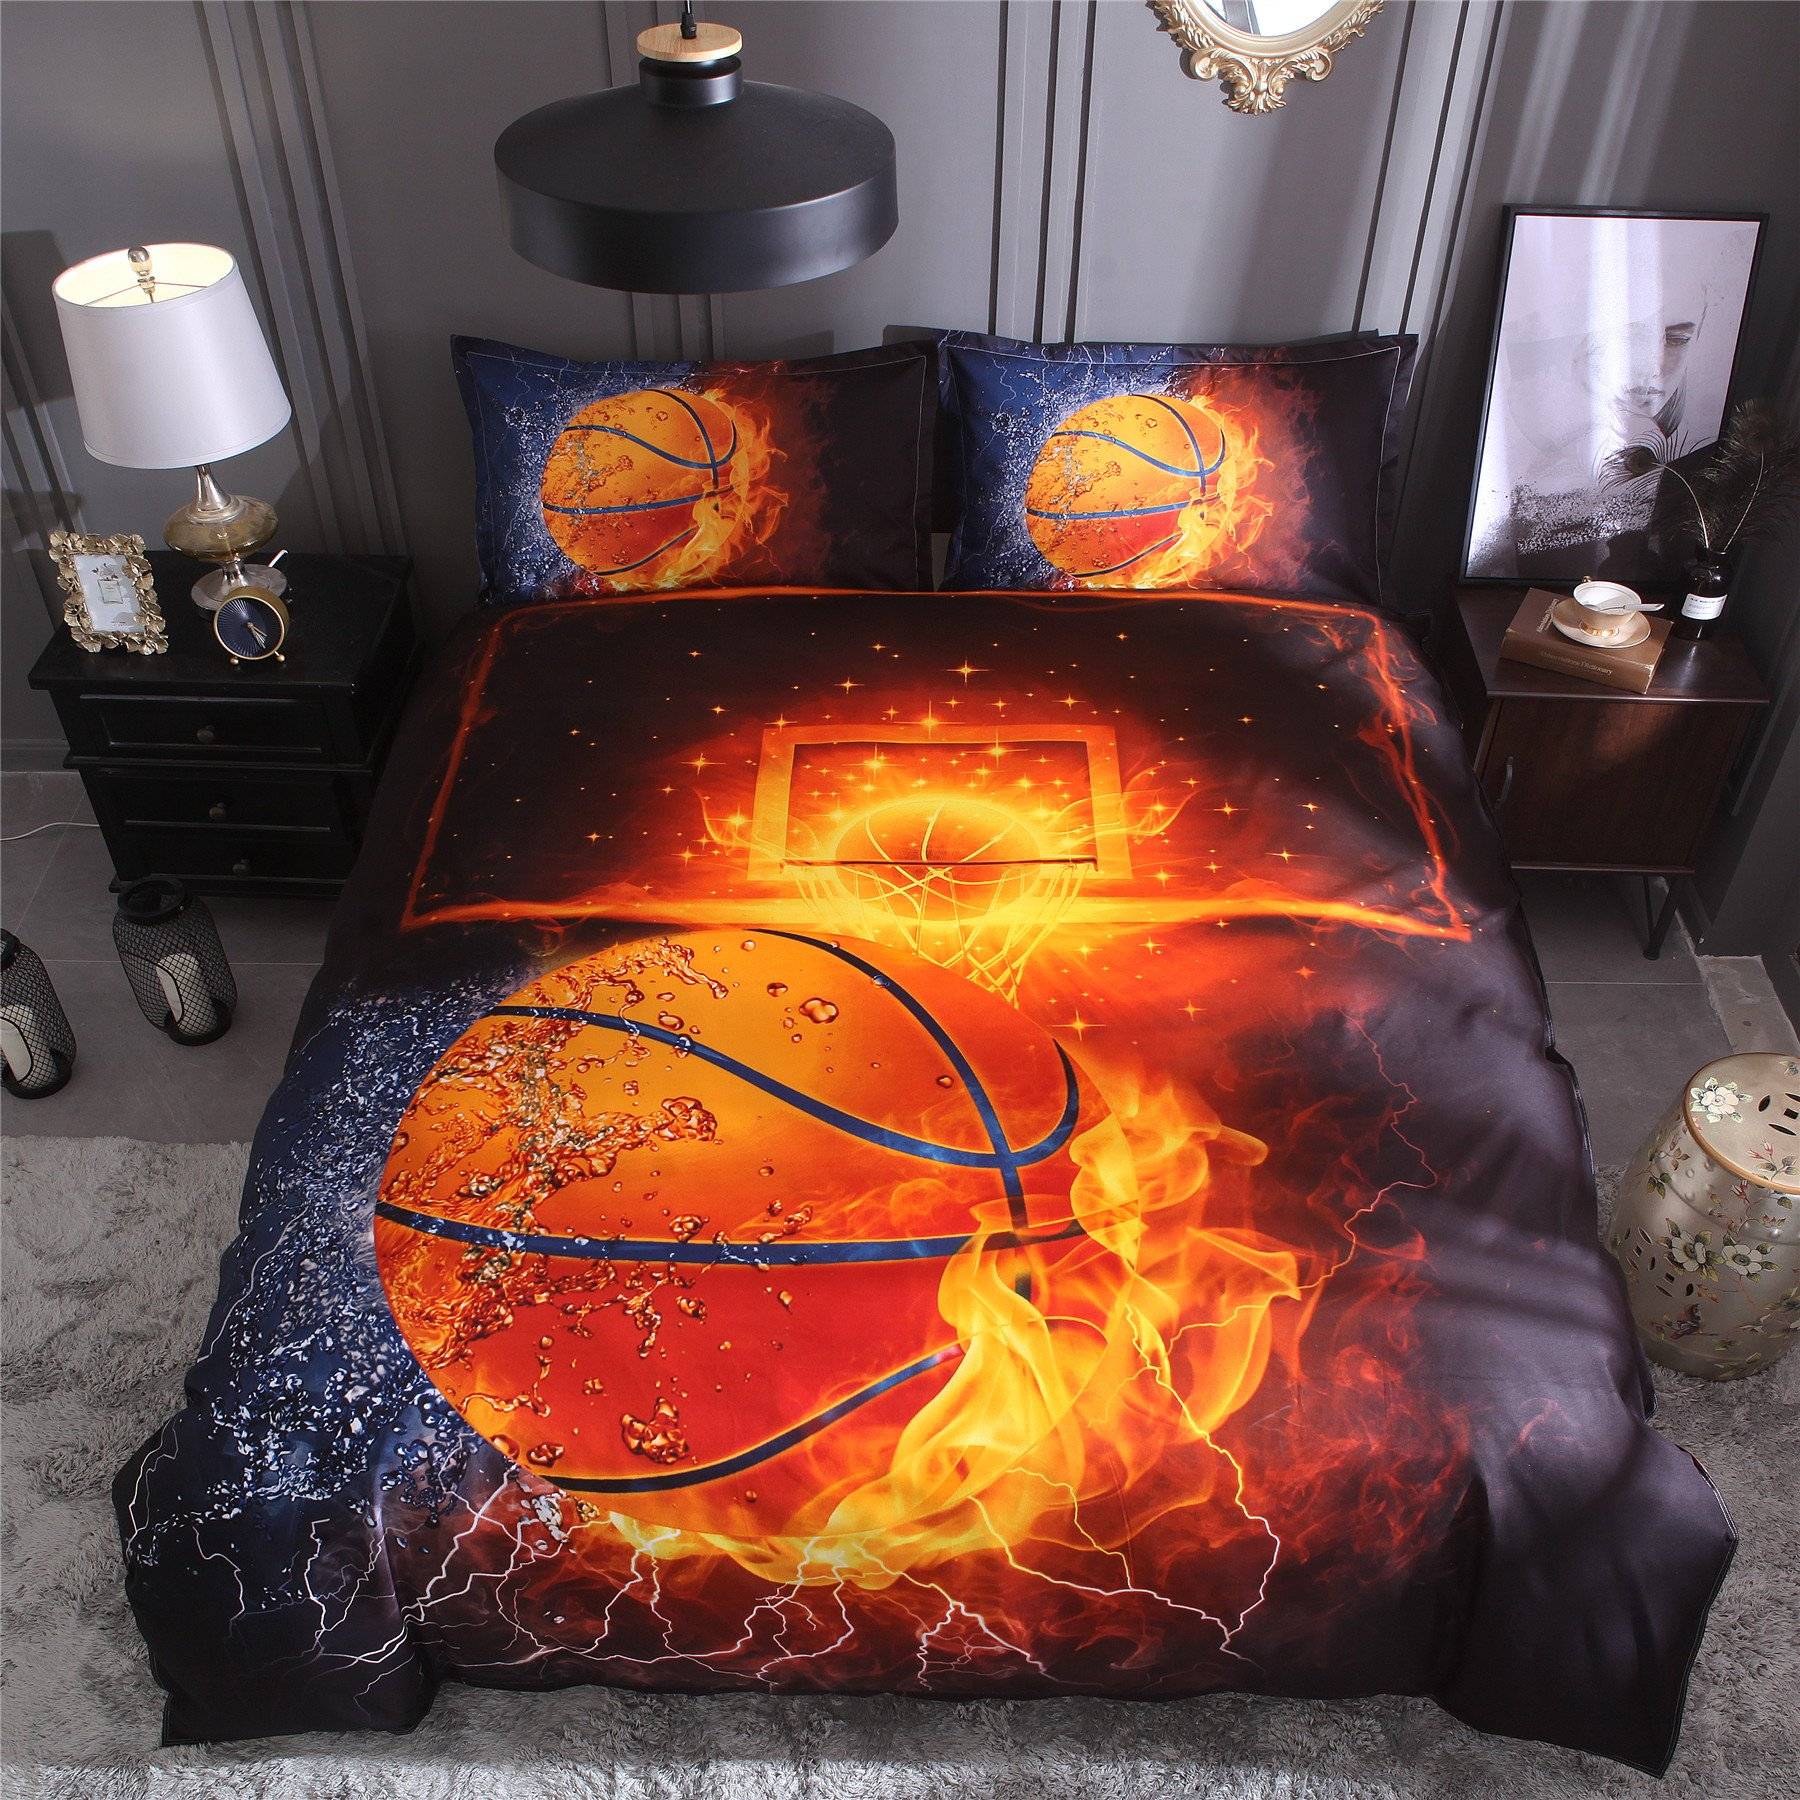 Meeting Story Basketball with Fire Print Duvet Cover Bedding Set For Kids (Galaxy Basketball, Twin)